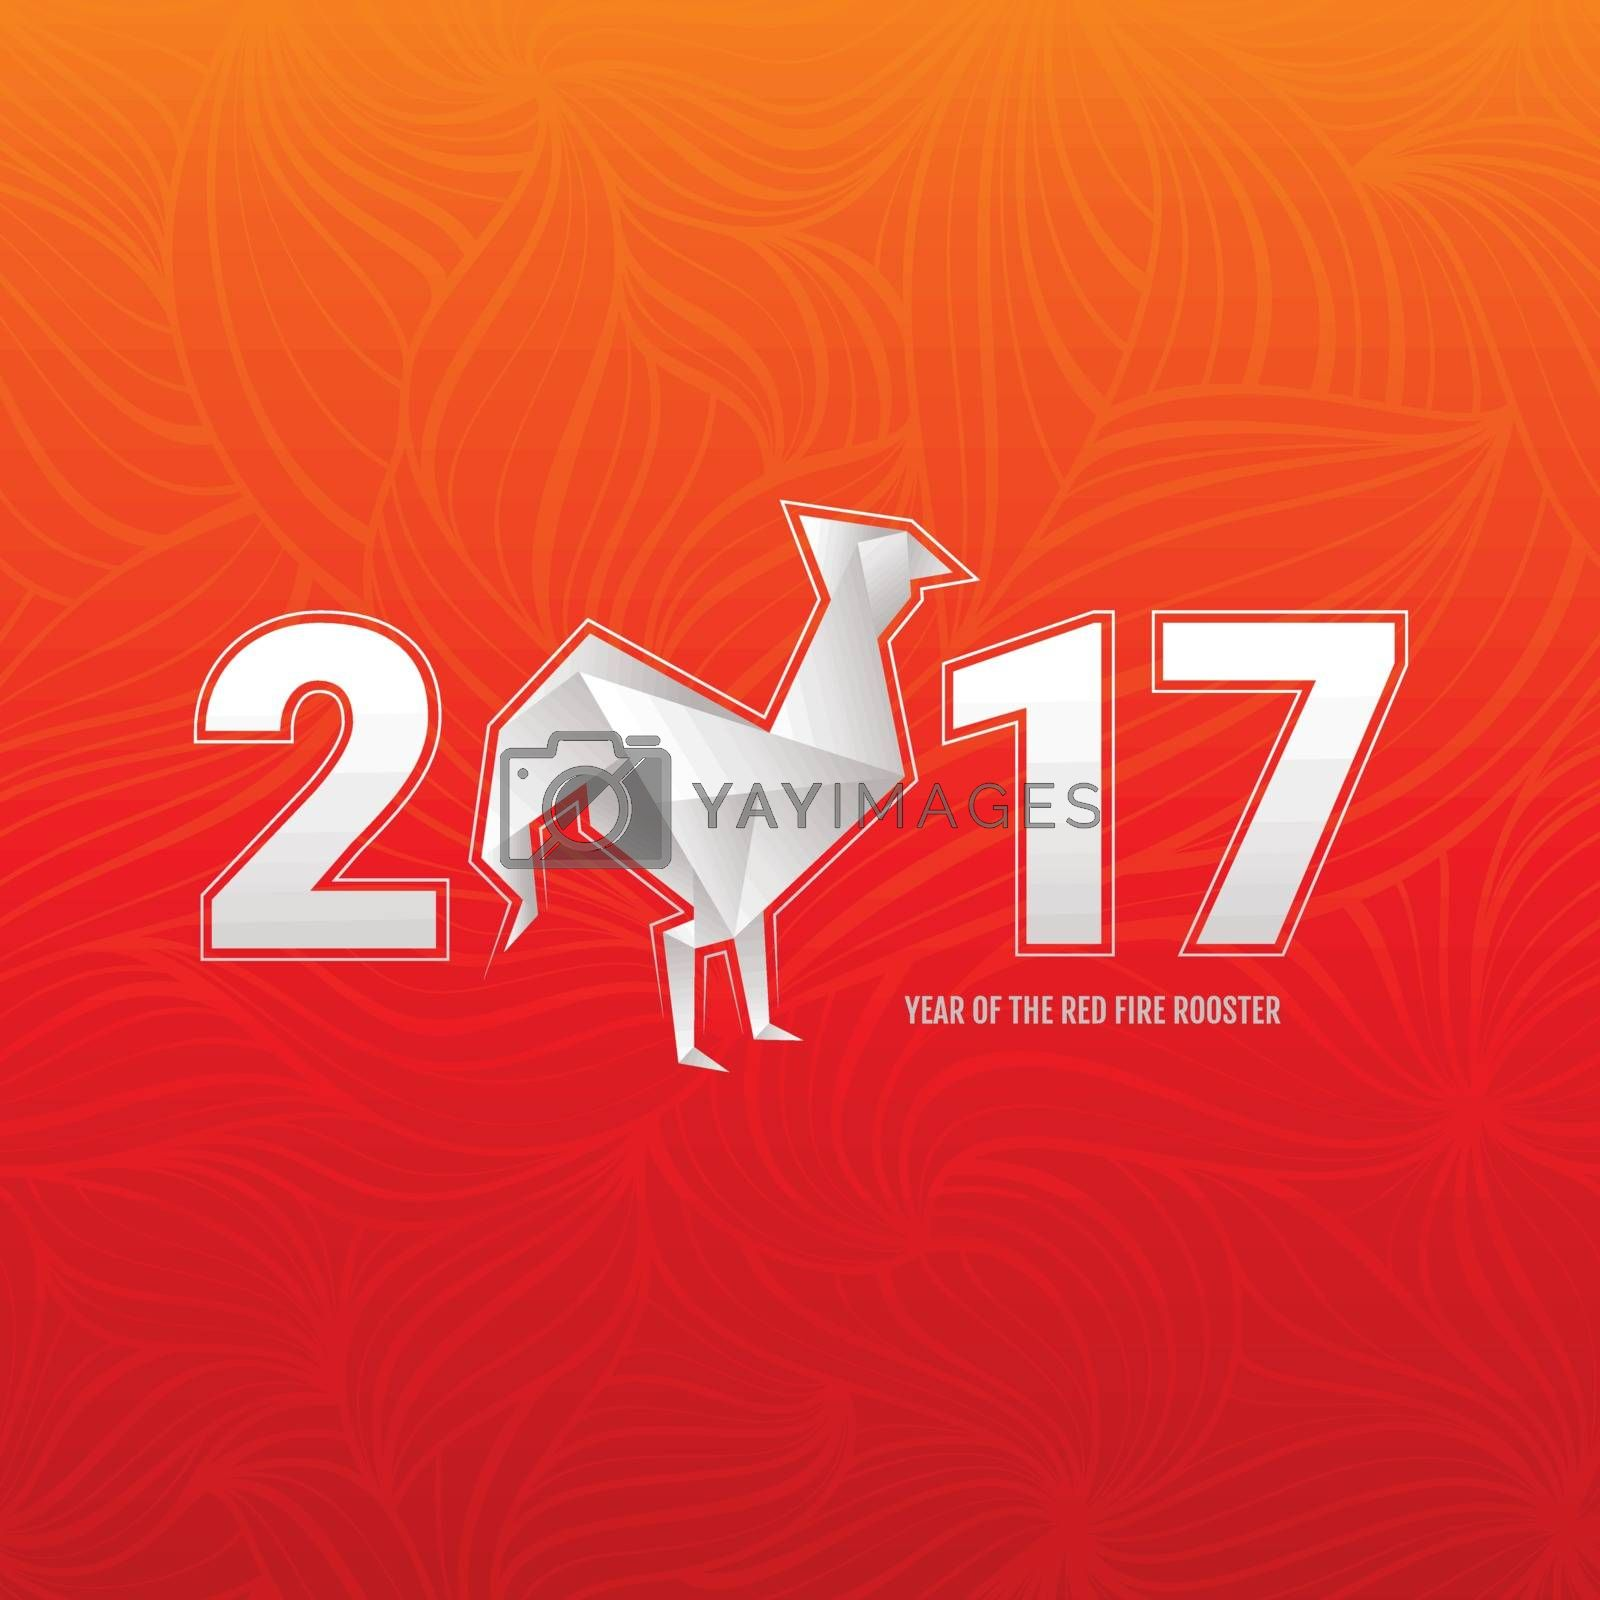 Chinese new year card with rooster. Vector illustration